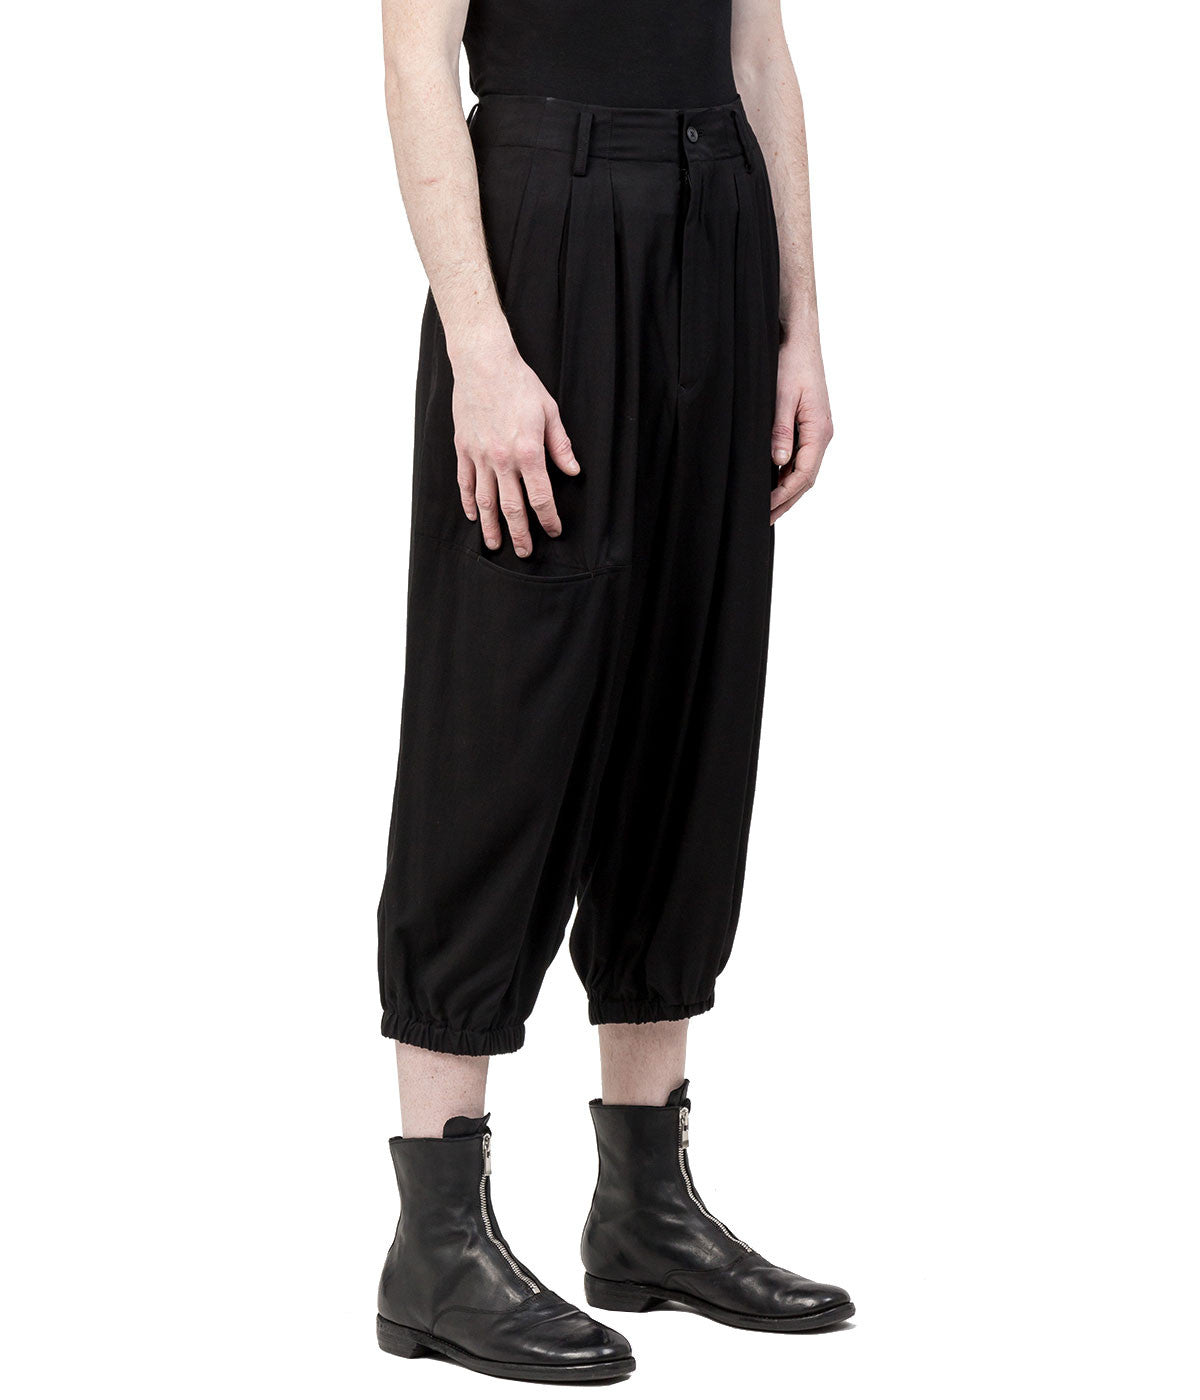 Black N-Panel Pocket Rayon Pants